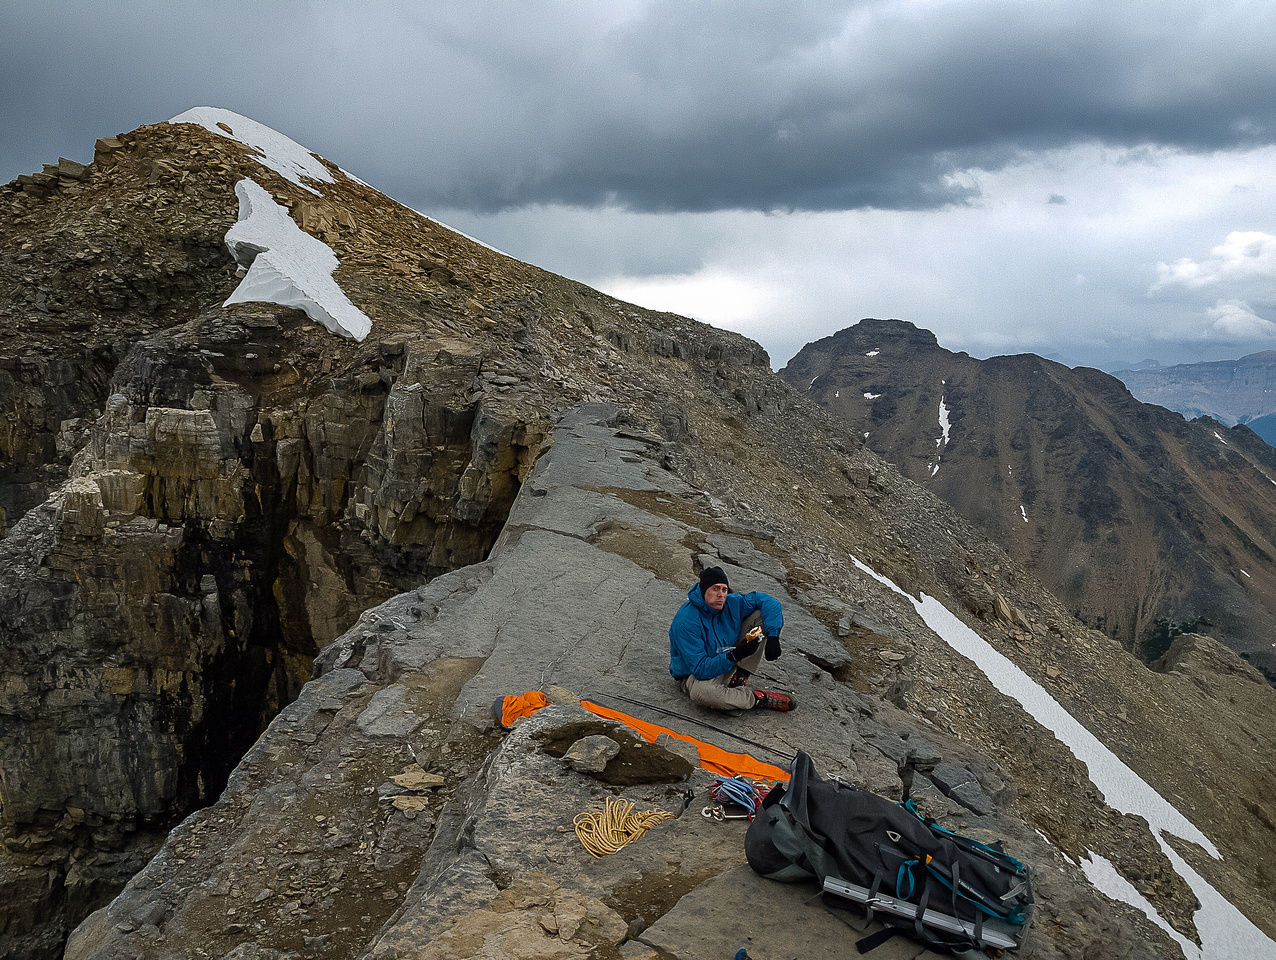 At our bivy on the east ridge of Bident Mountain.